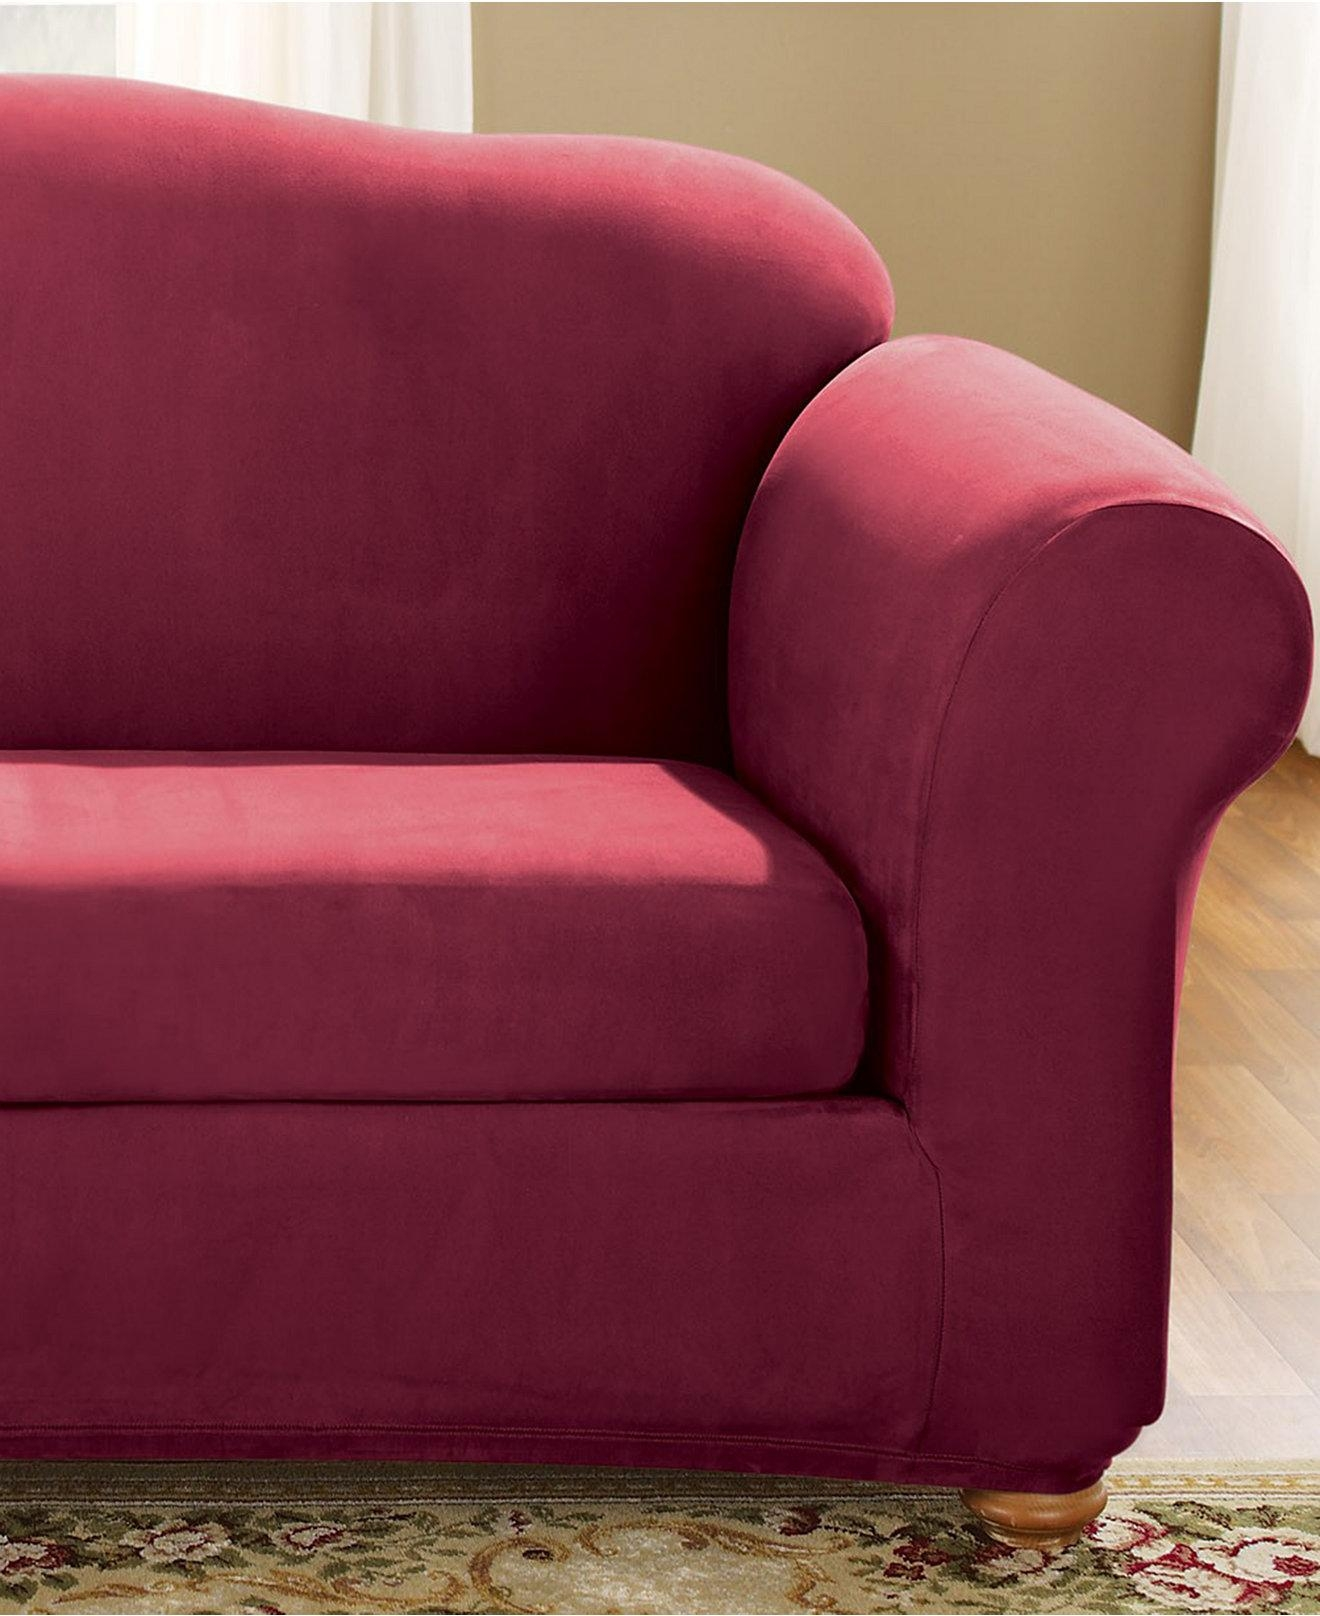 Tips: T Cushion Slipcovers For Sofas | Slipcovers For Chairs With For 2 Piece Sofa Covers (View 14 of 27)